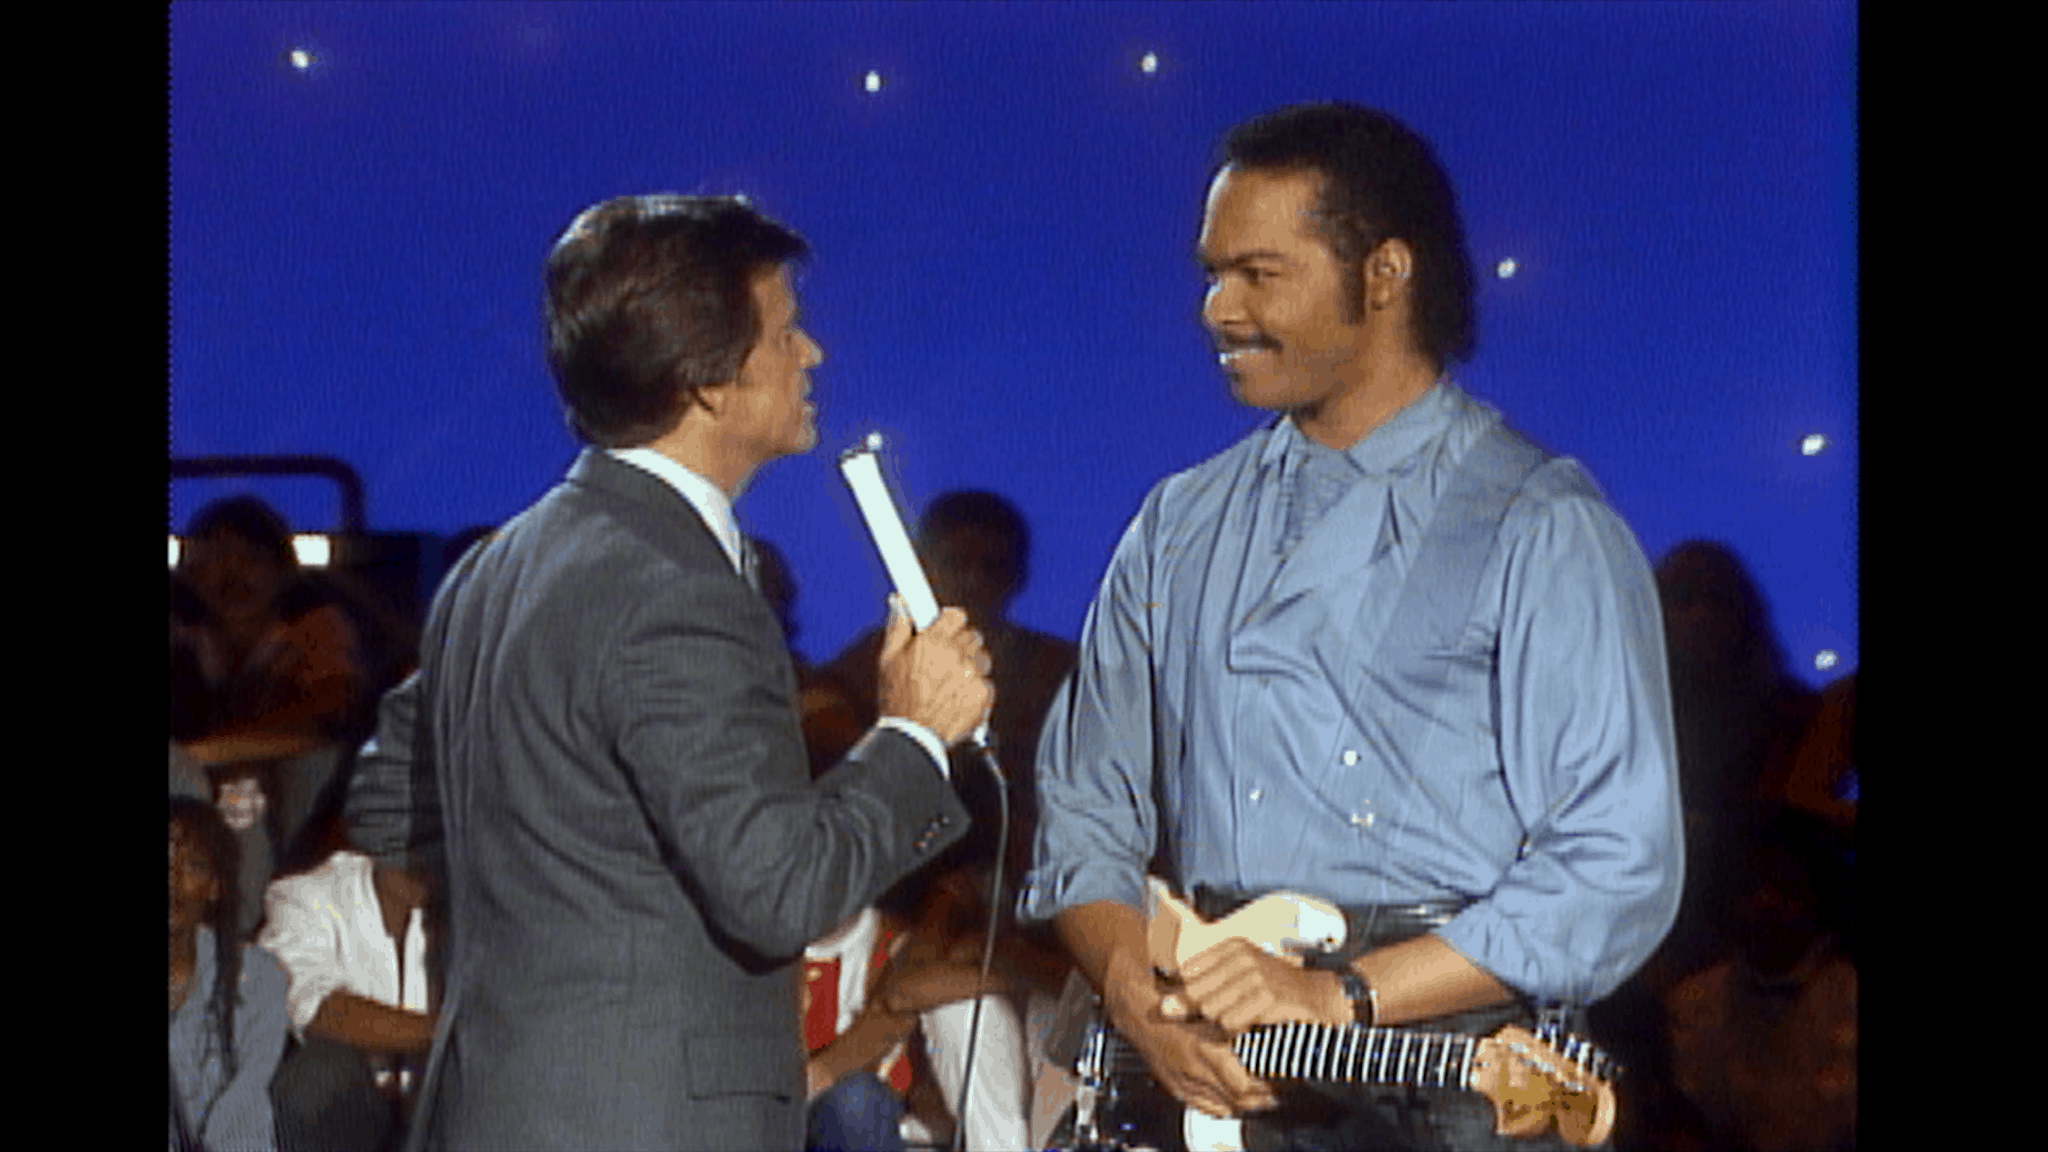 The AV Interview: Ray Parker Jr (Who You Gonna Call?) 2